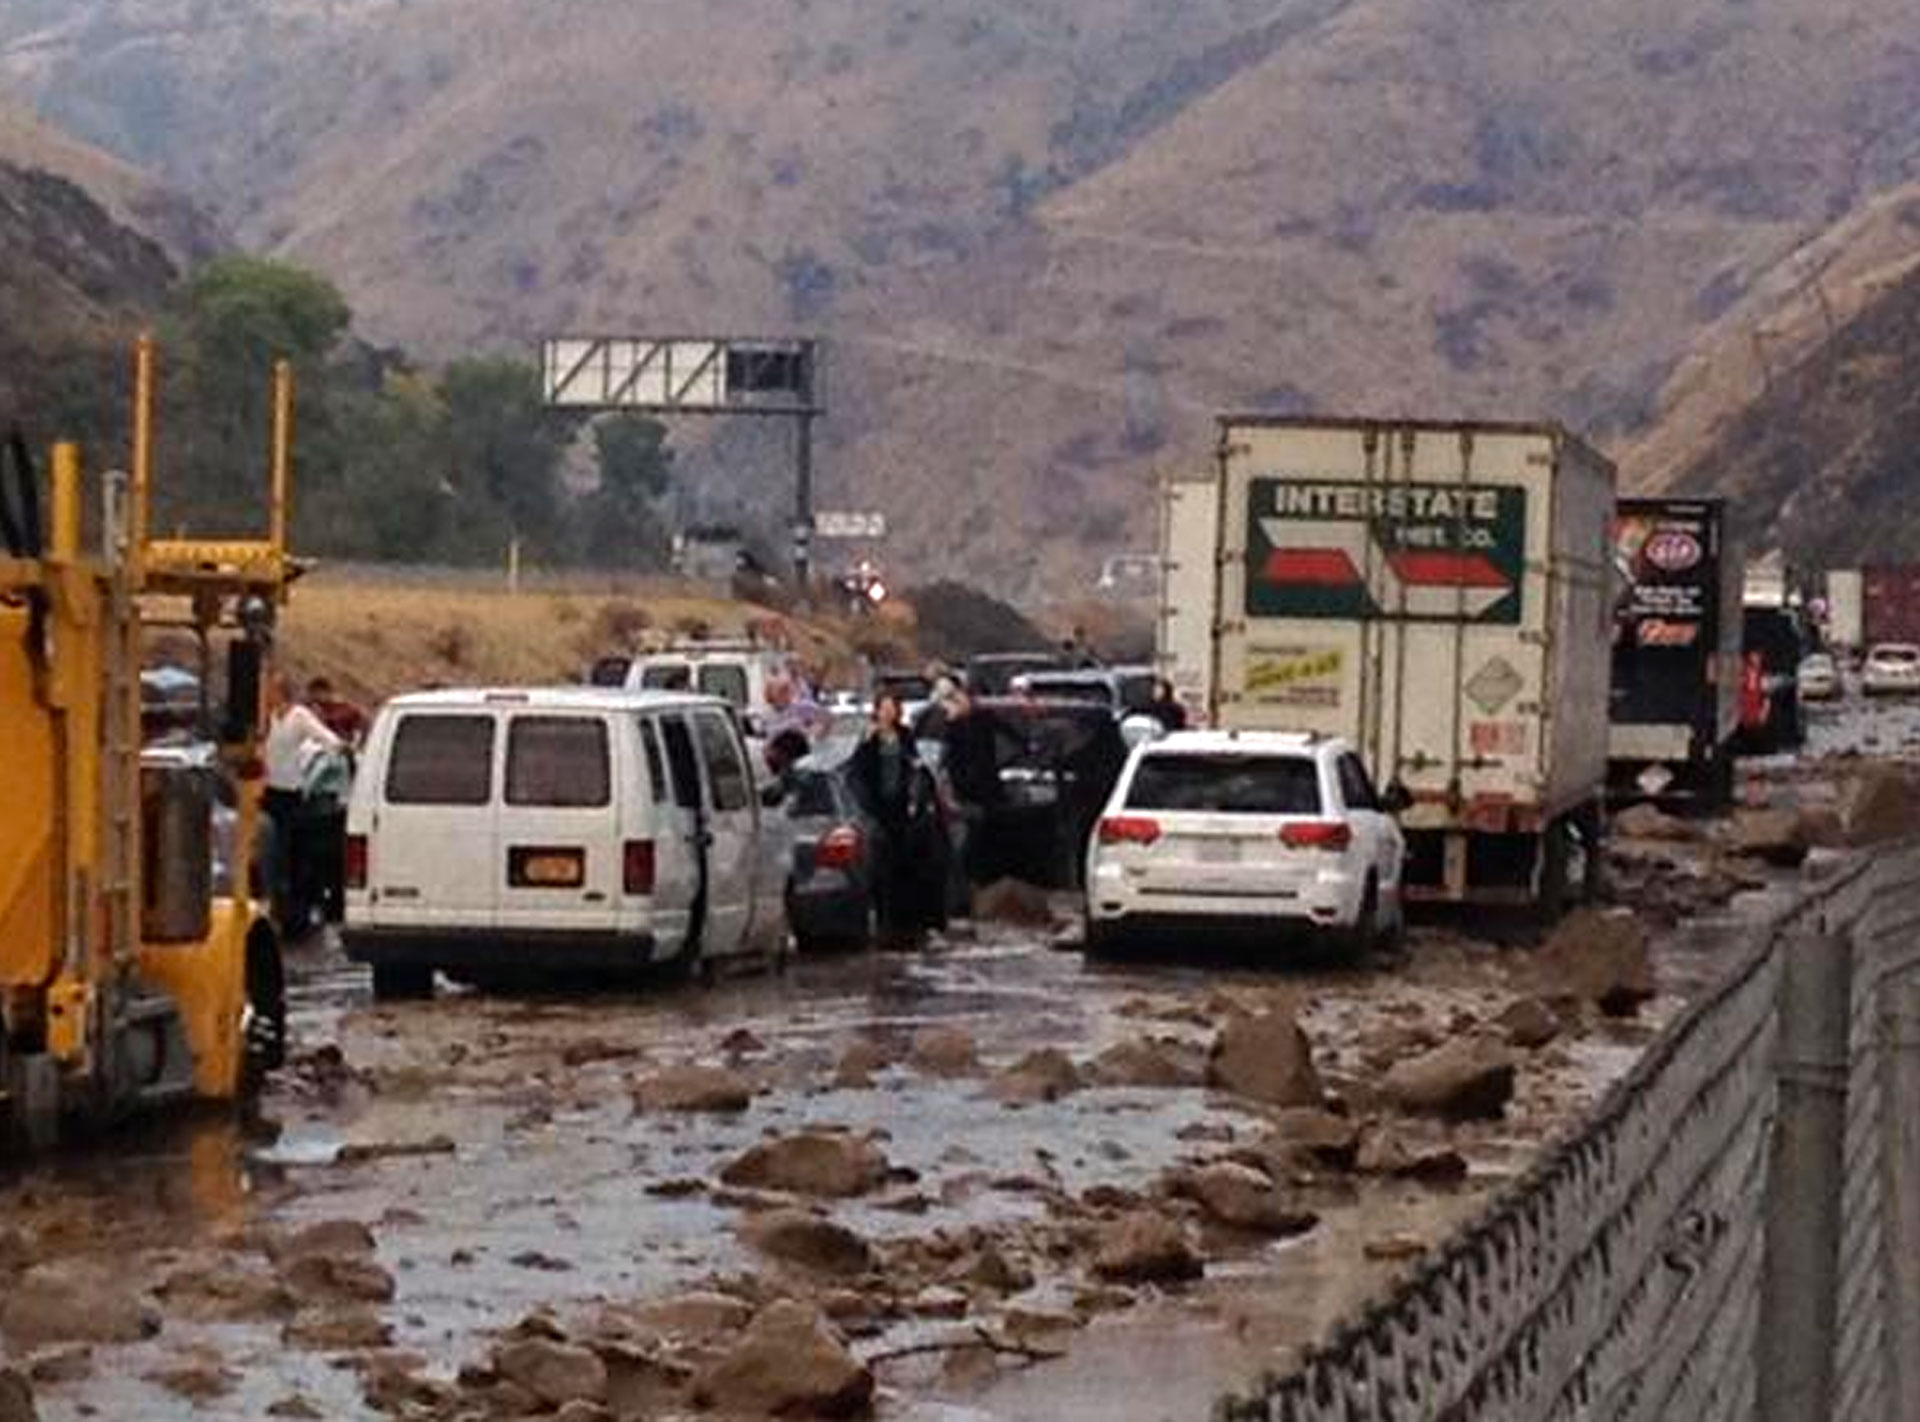 Caltrans photo of traffic stopped on Interstate 5 north of Los Angeles after a deluge triggered mudflows.